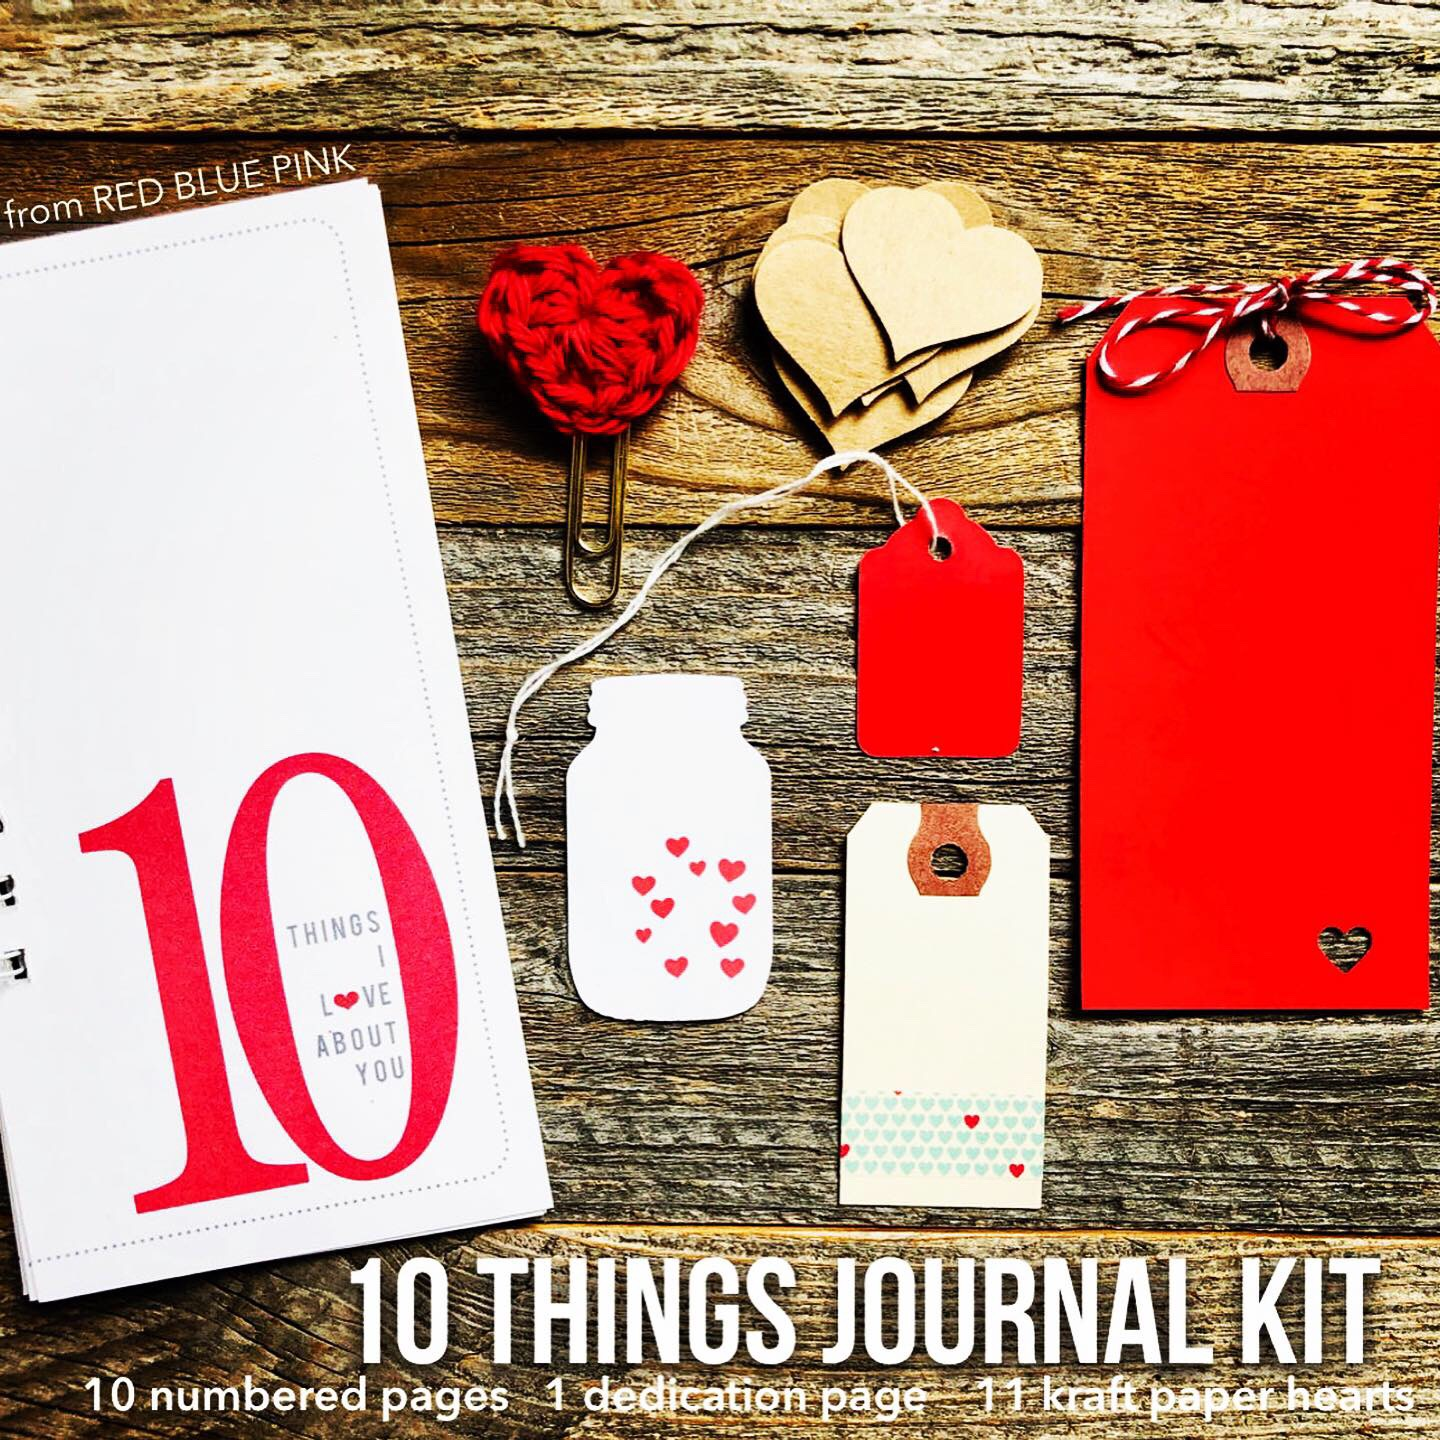 #Things I Love #Love Journal #Things I Love About You #10 Things